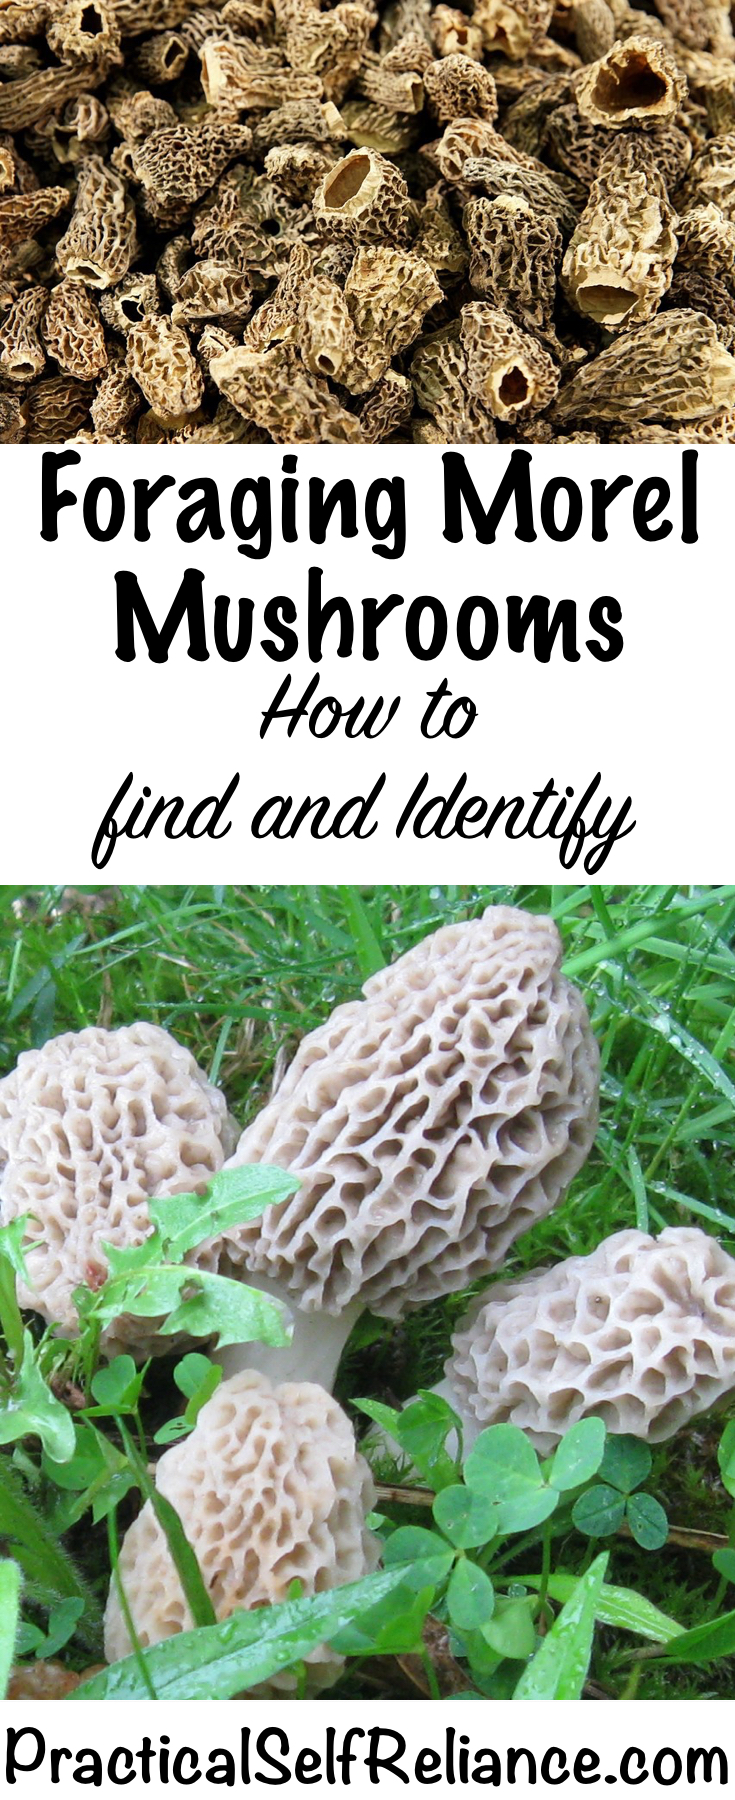 Foraging Morel Mushrooms - How to Find and Identify Morels